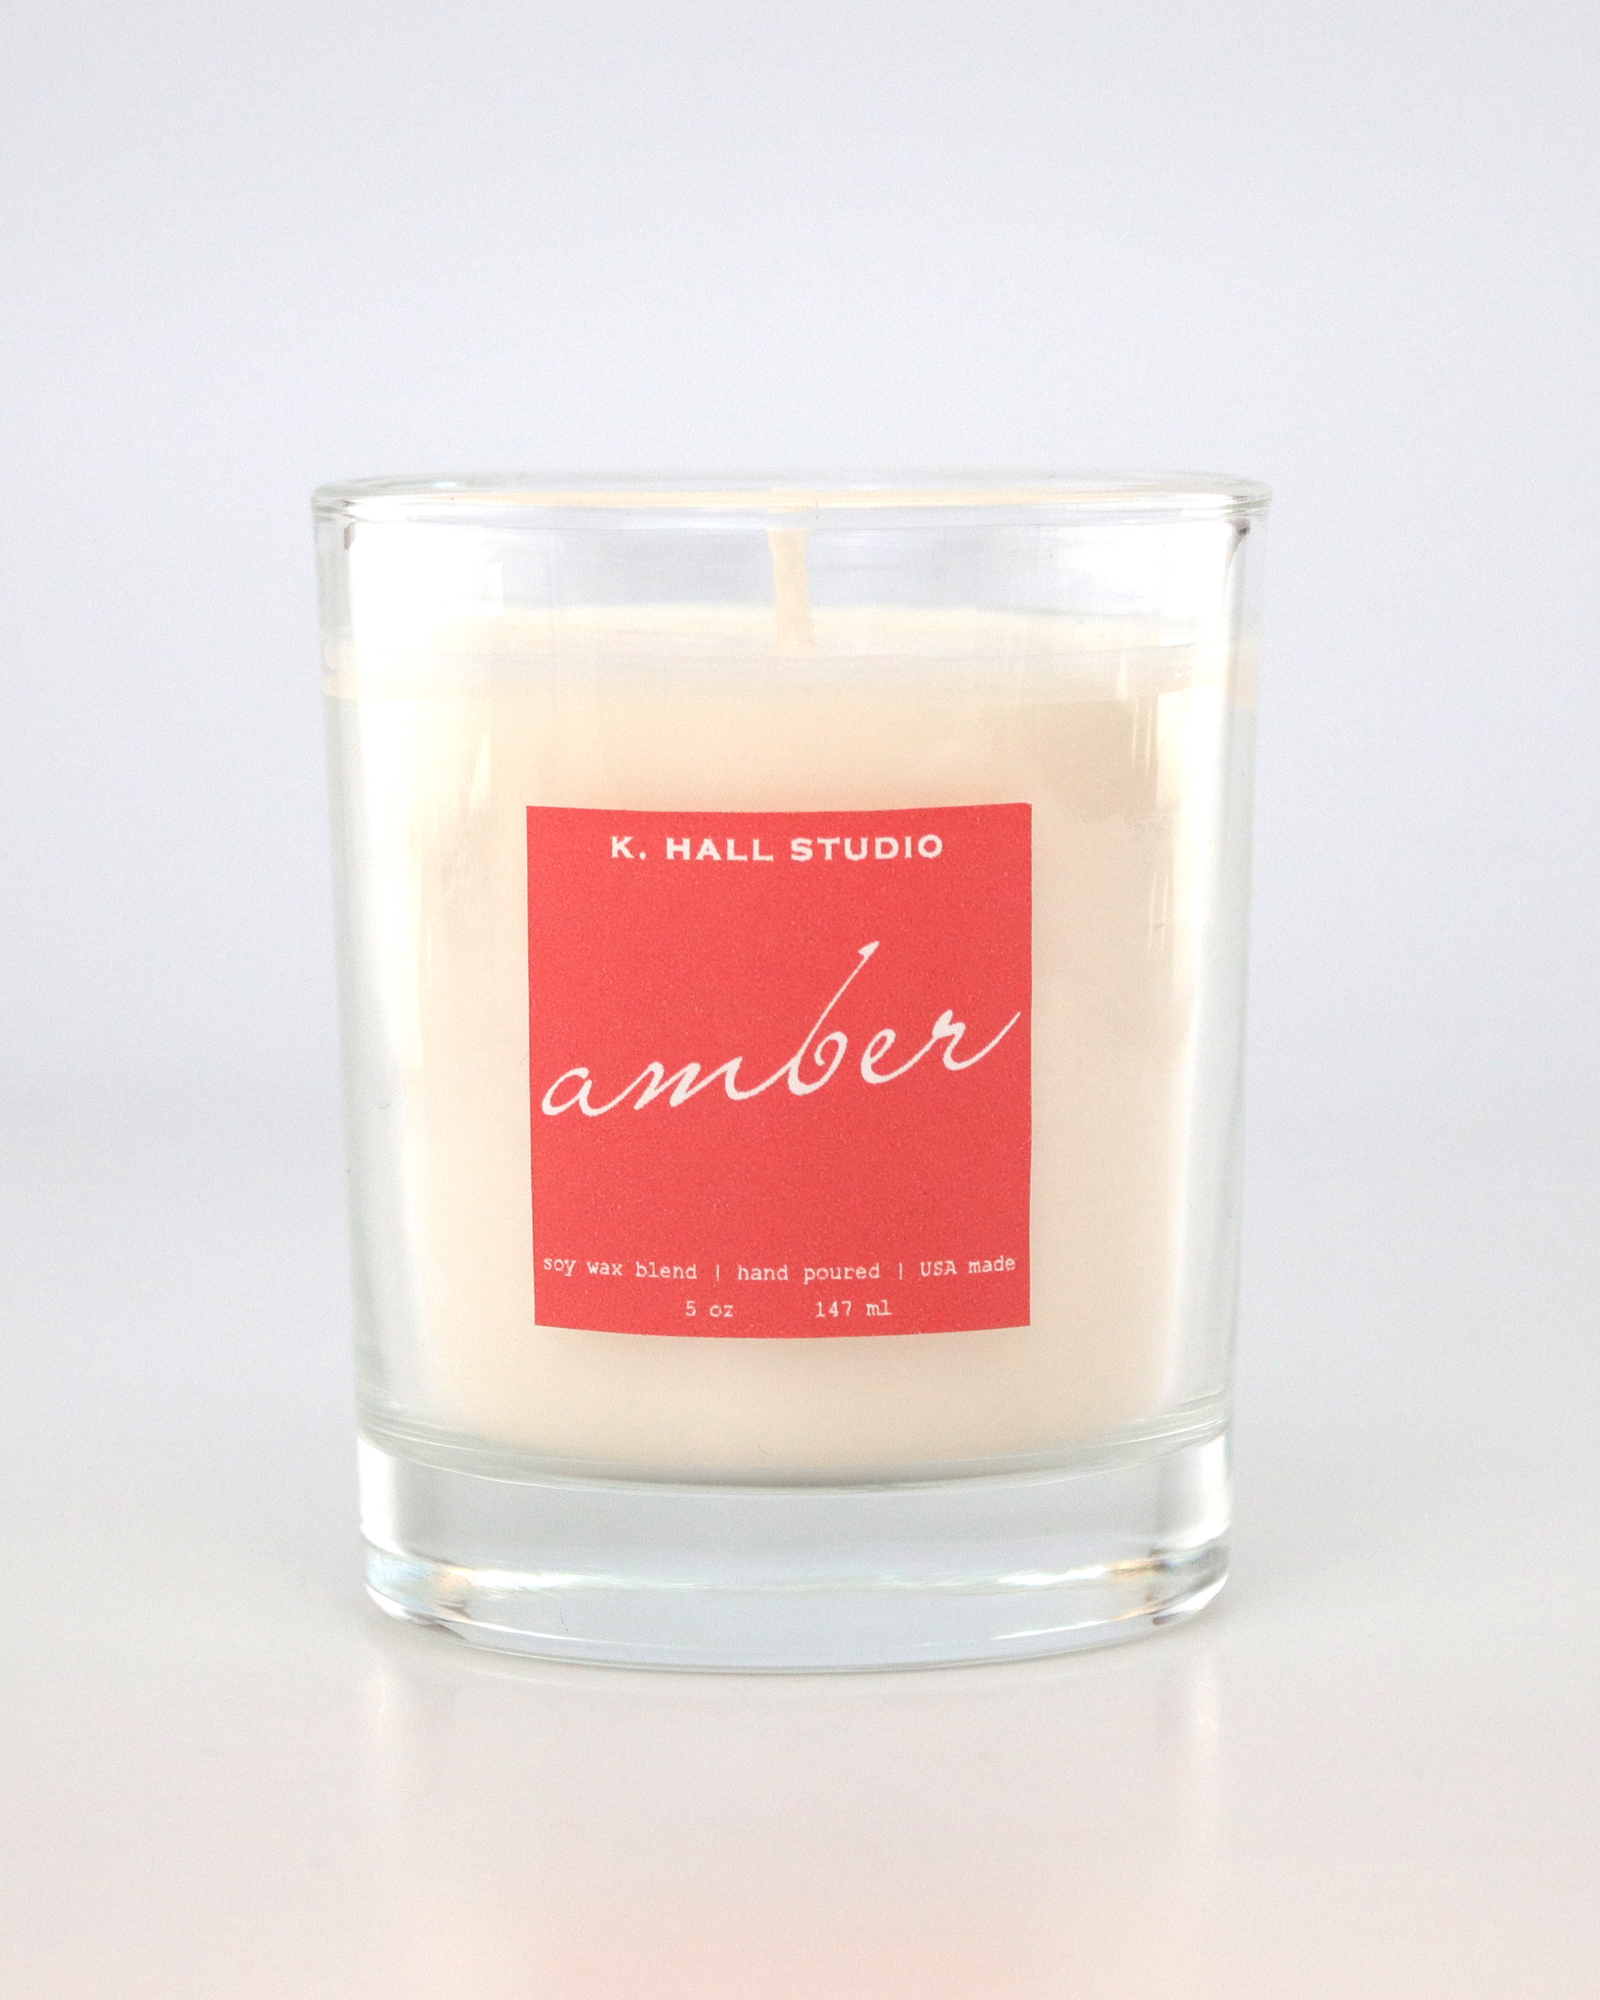 Artisan candle with pink label